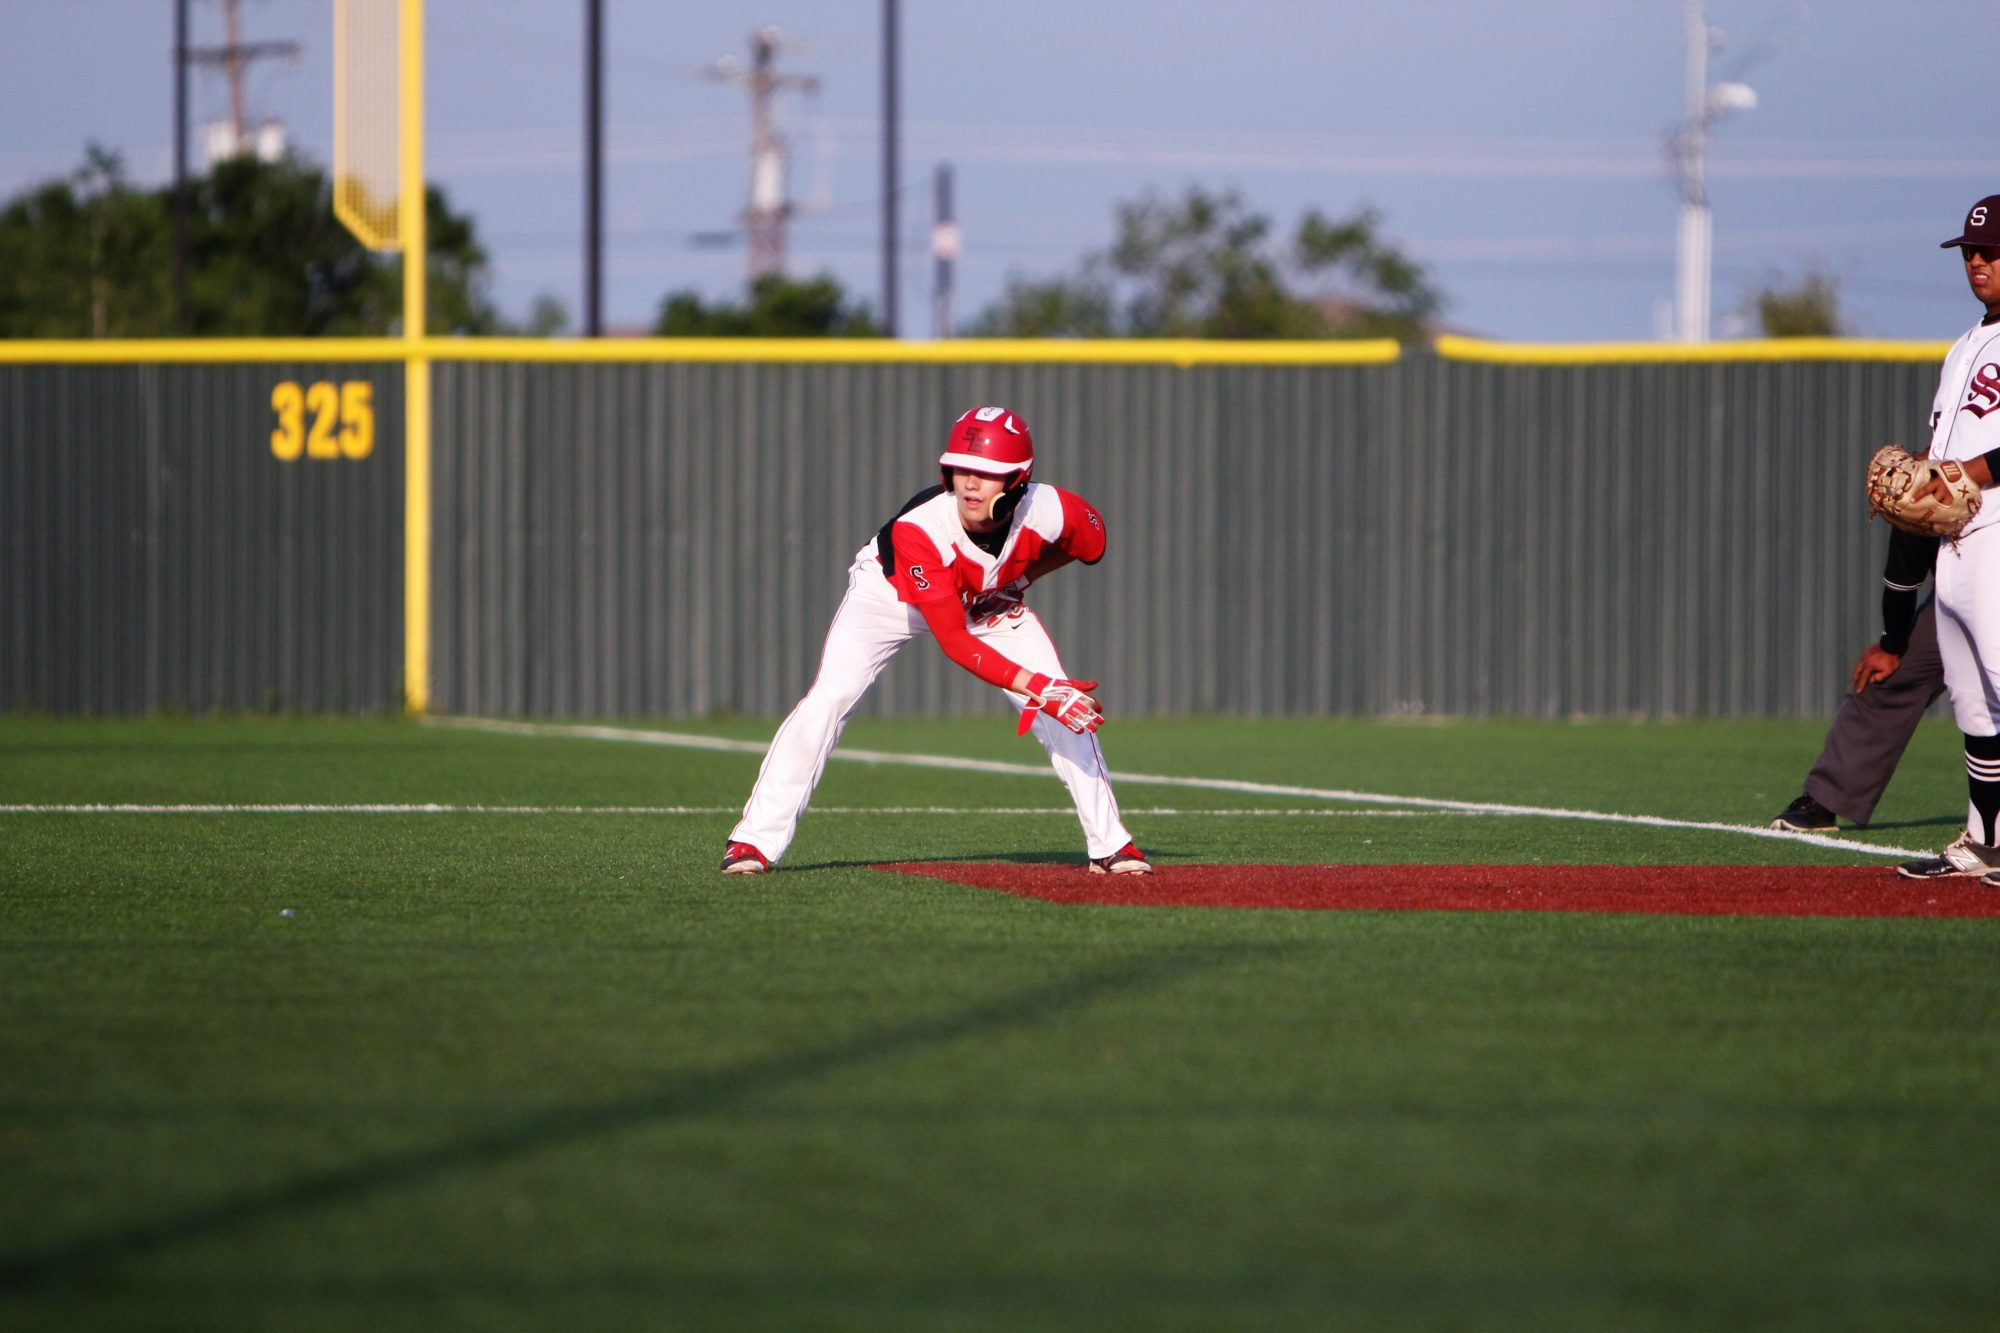 Eagles sweep Sinton in Region Semifinals